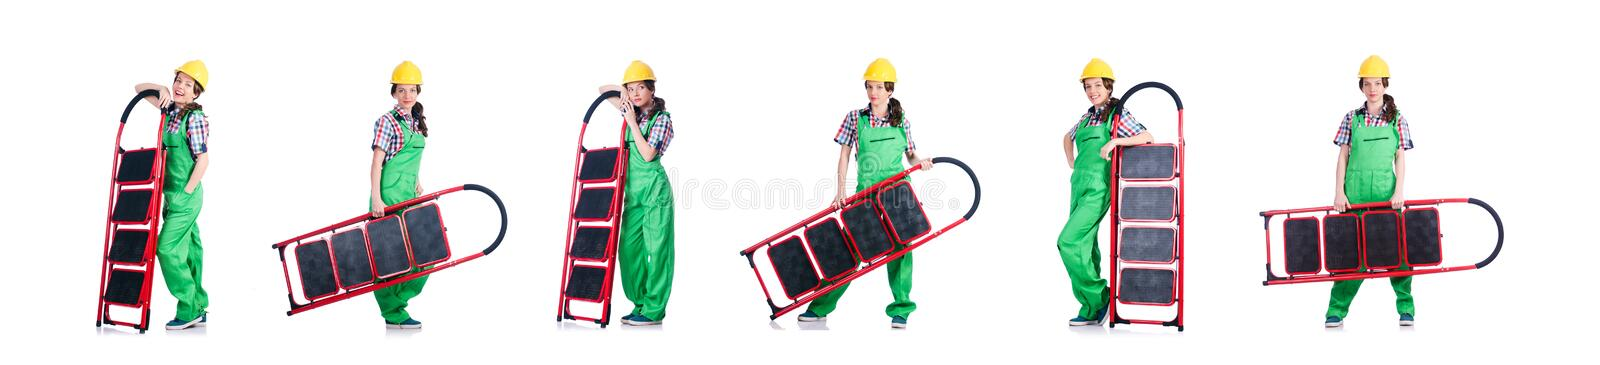 Woman repair worker with ladder stock photography